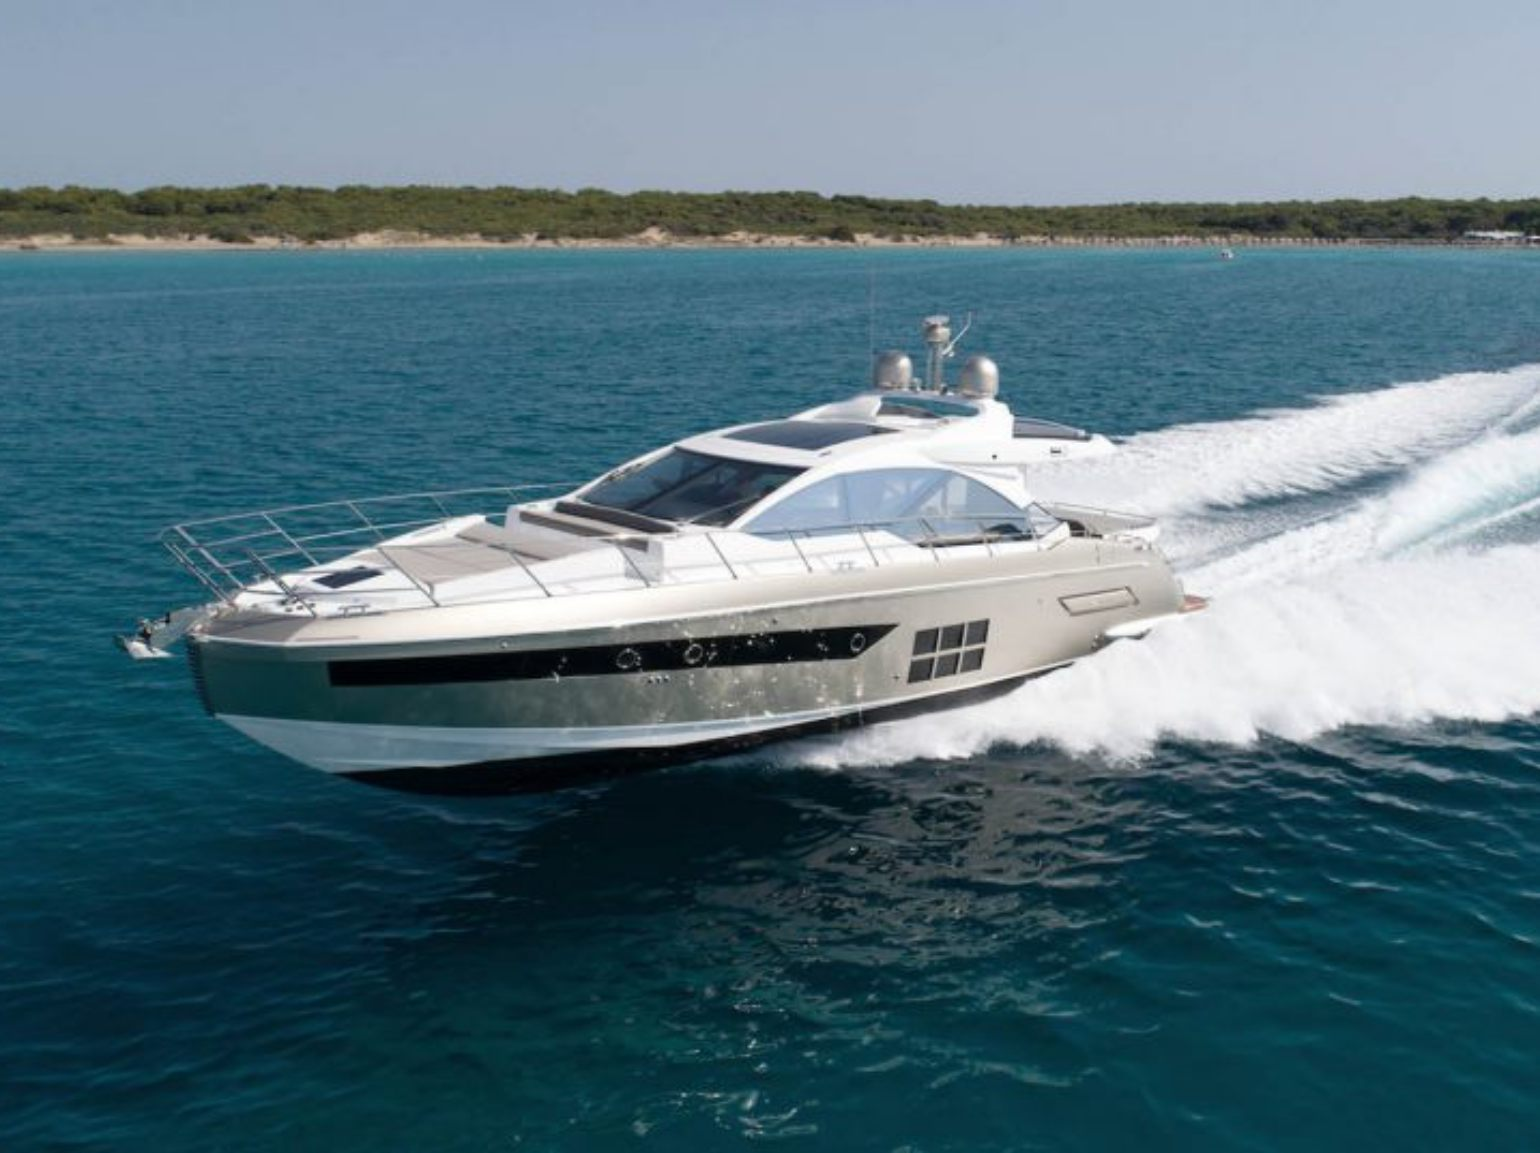 8 extravagant yachts to watch ahead of boat show season